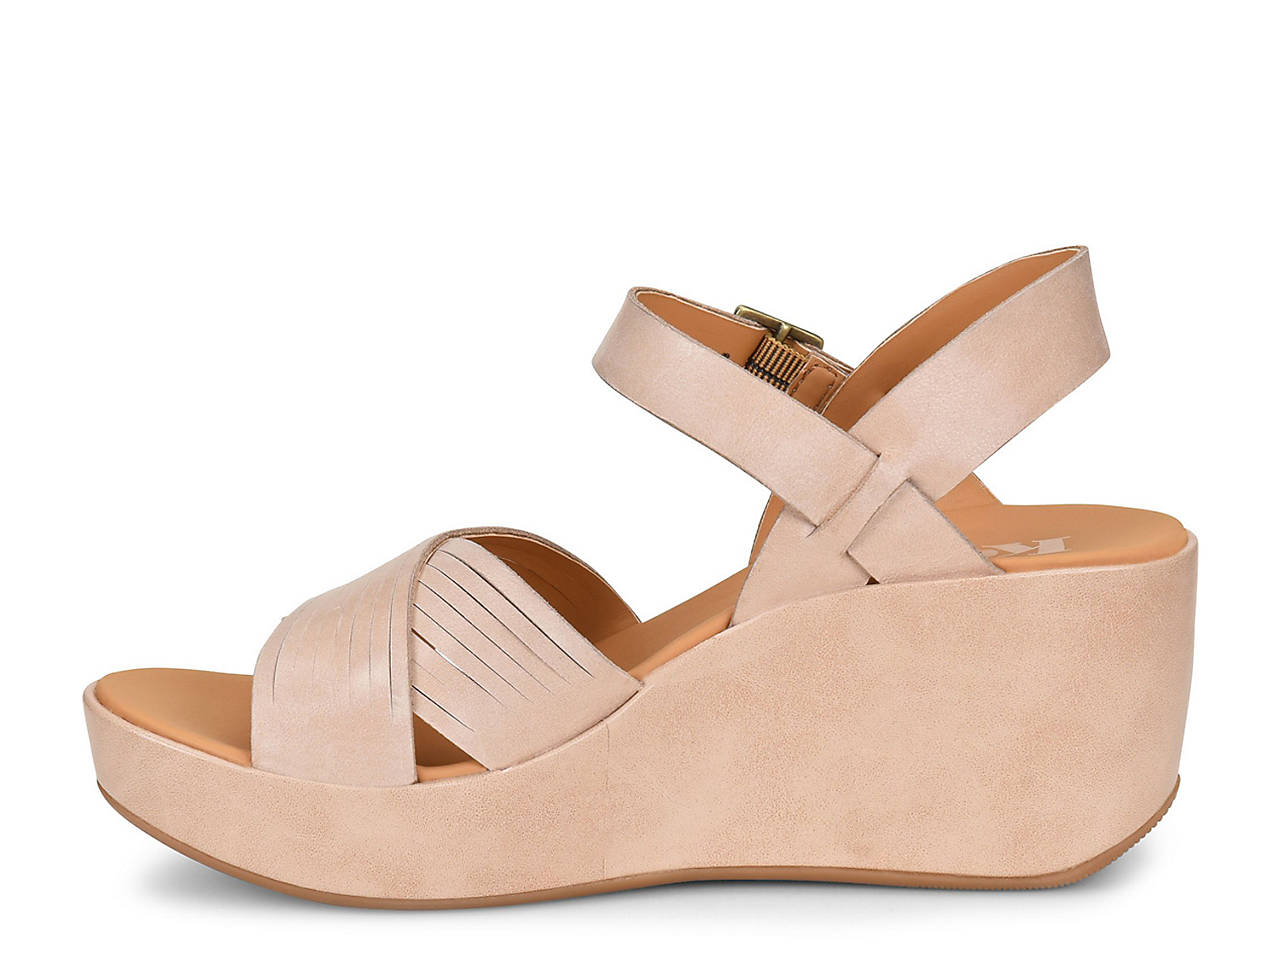 ad36f6e77ebd Korks Martinique Wedge Sandal Women s Shoes